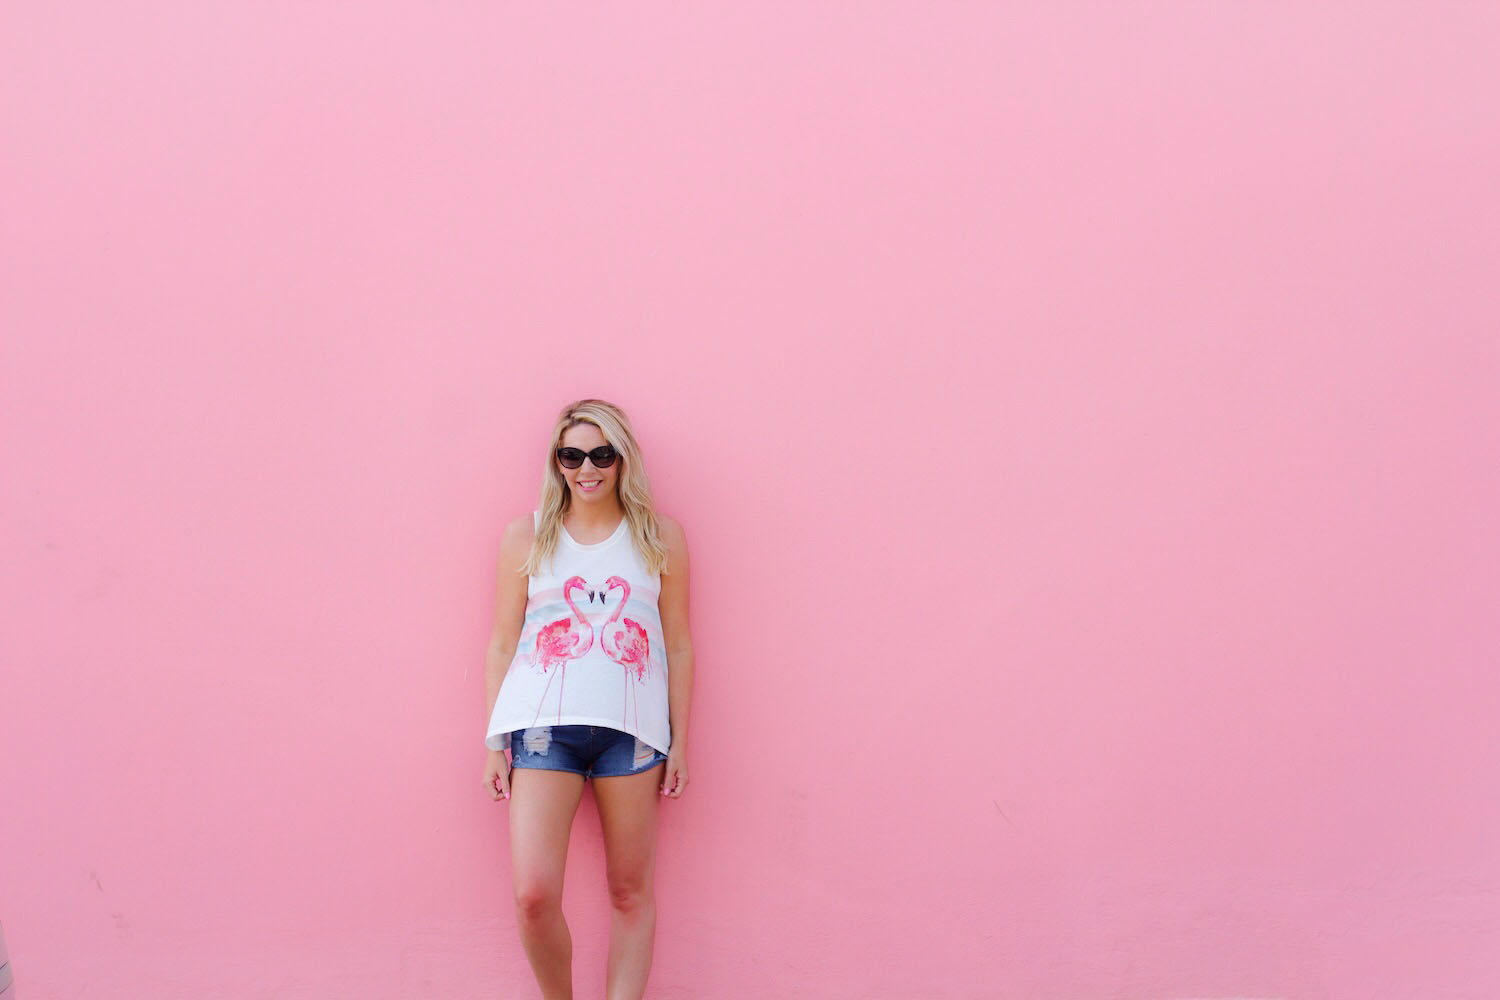 pink-the-town-aruba-pink-wall-pink-mall-22